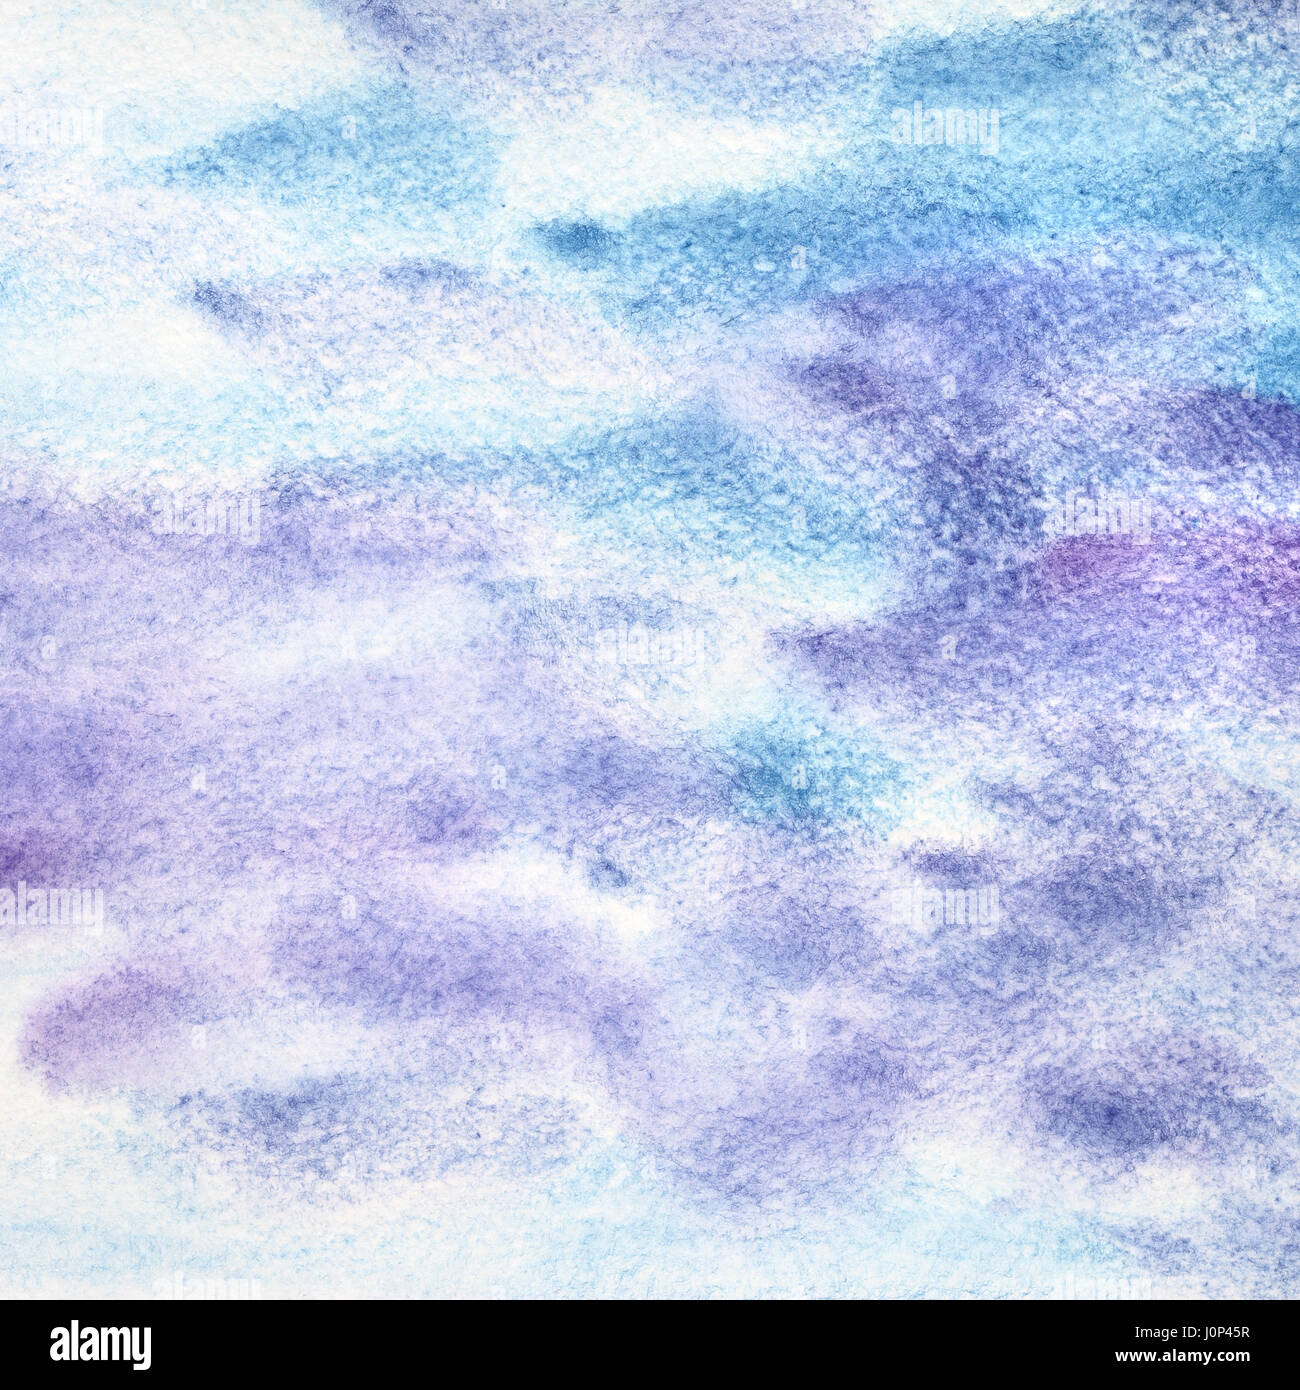 Blue violet watercolor abstract background with strokes - Stock Image